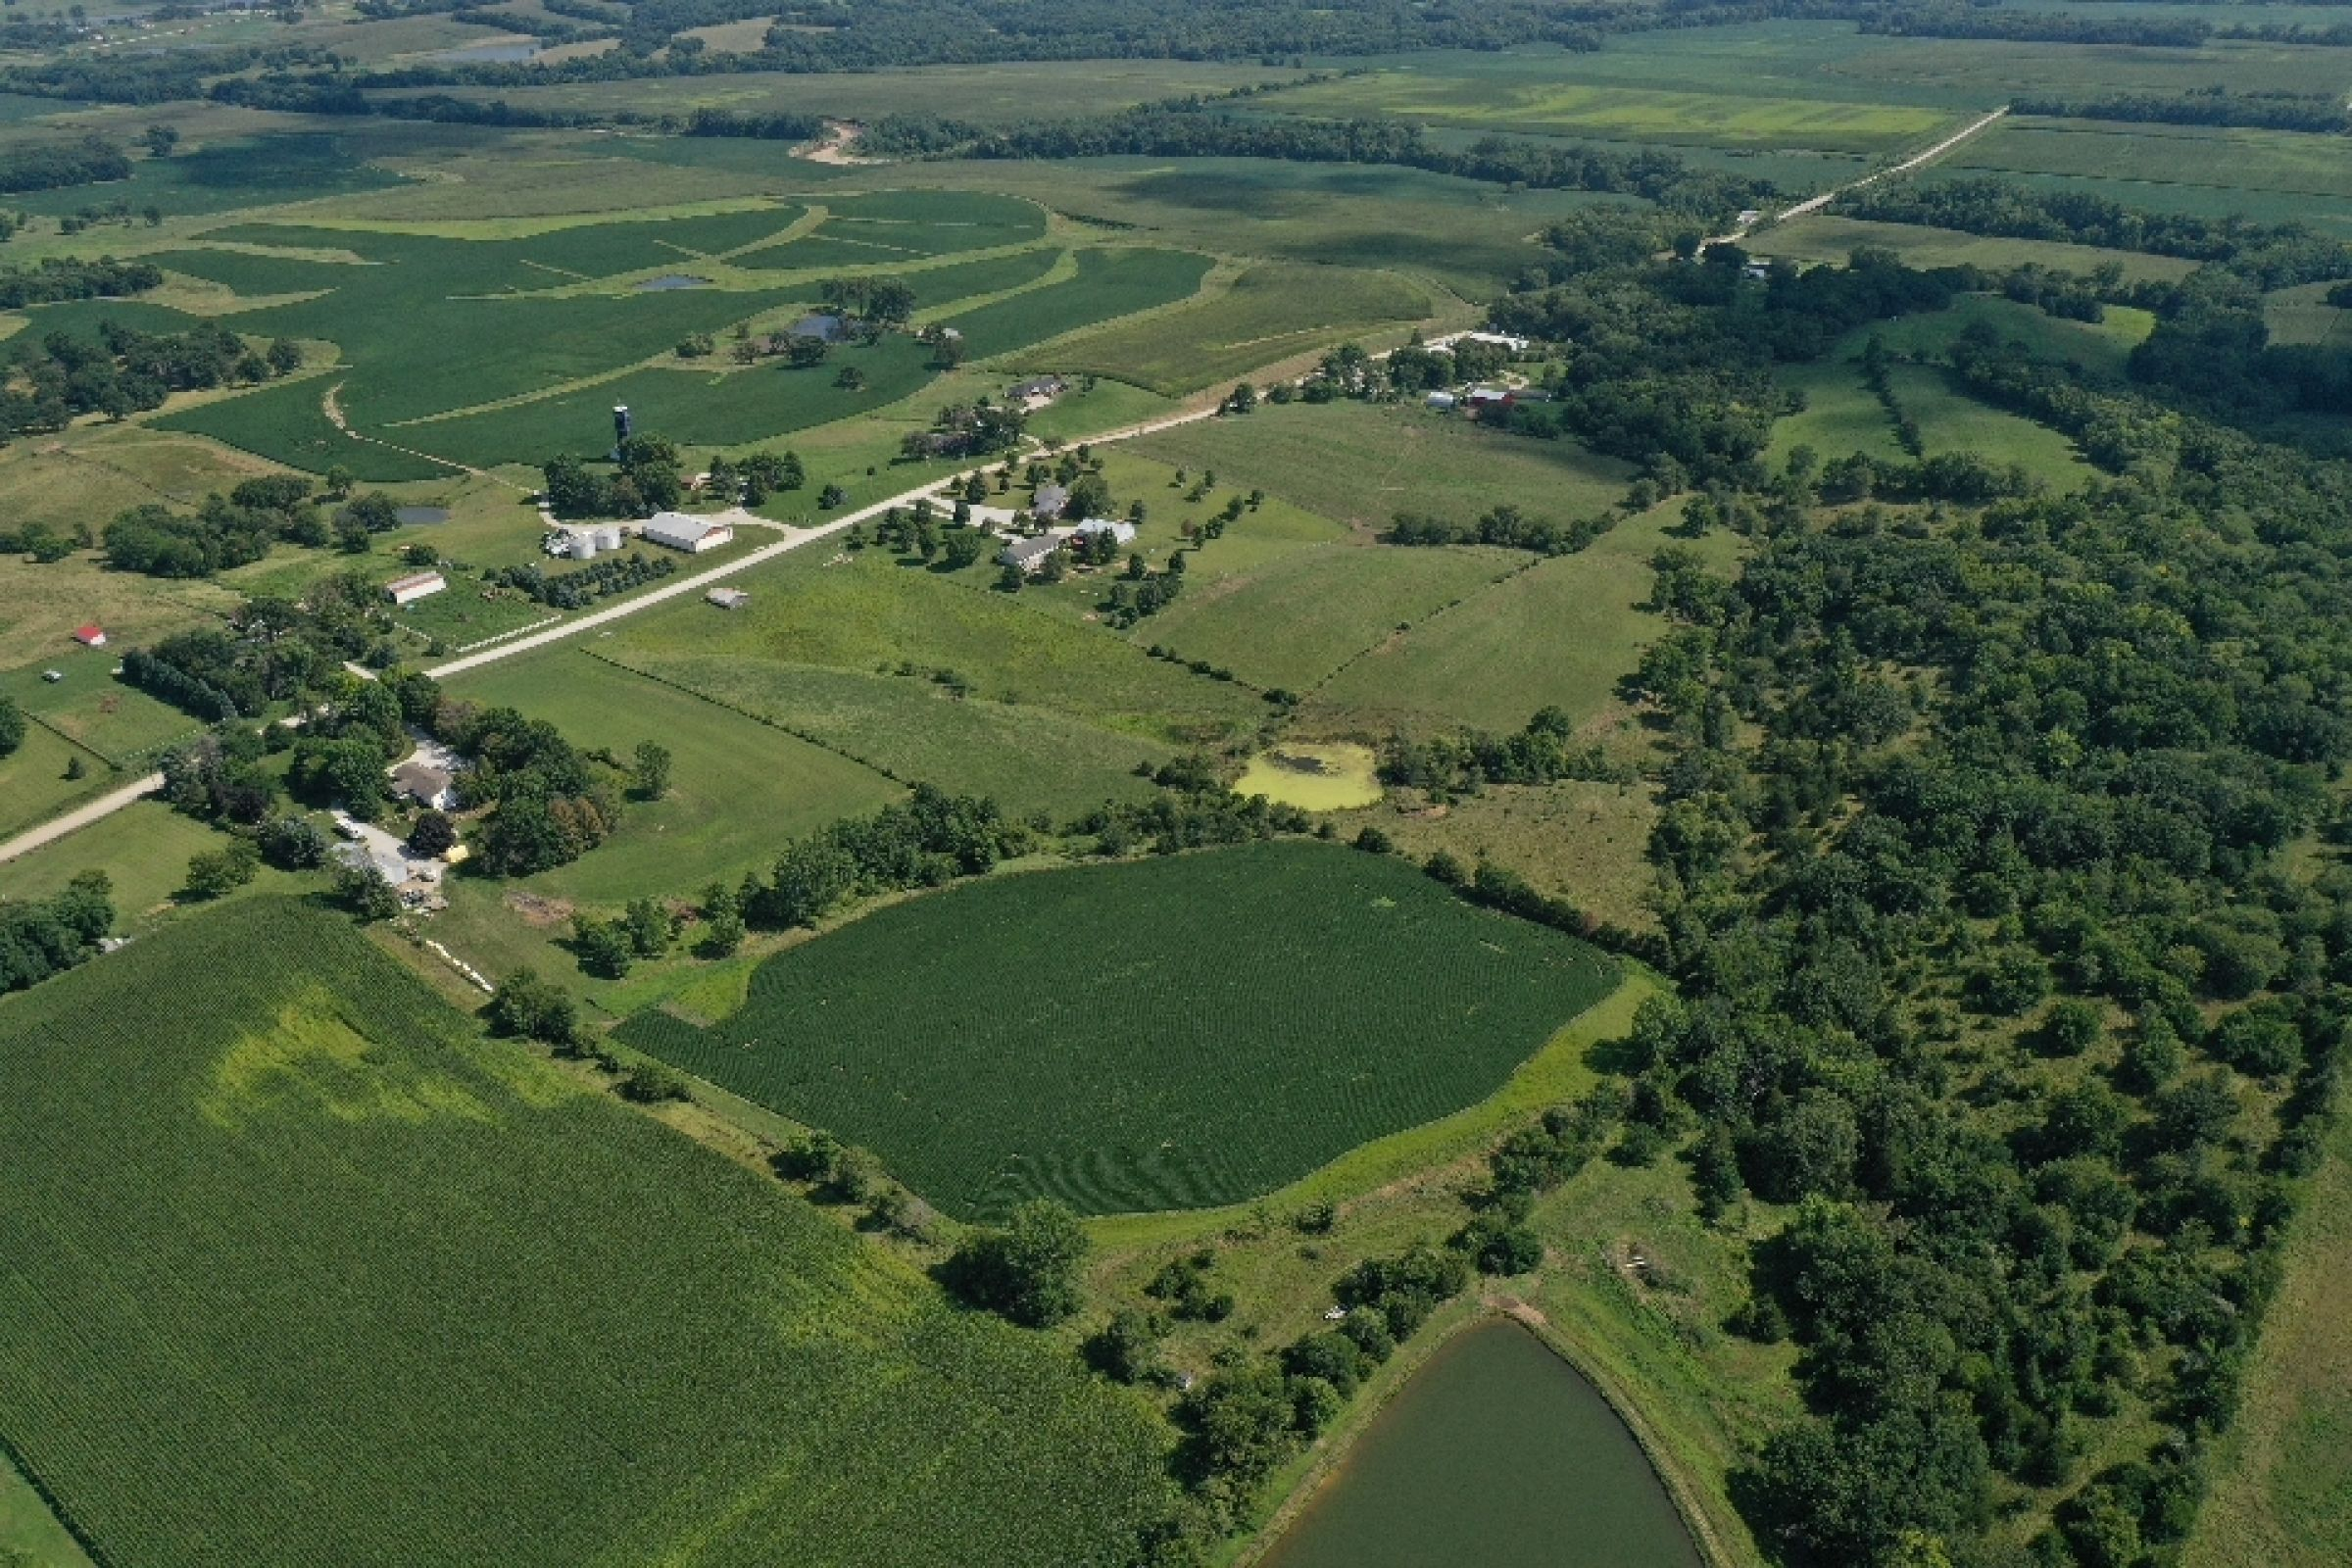 residential-land-warren-county-iowa-29-acres-listing-number-15120-2-2020-08-20-195121.jpg